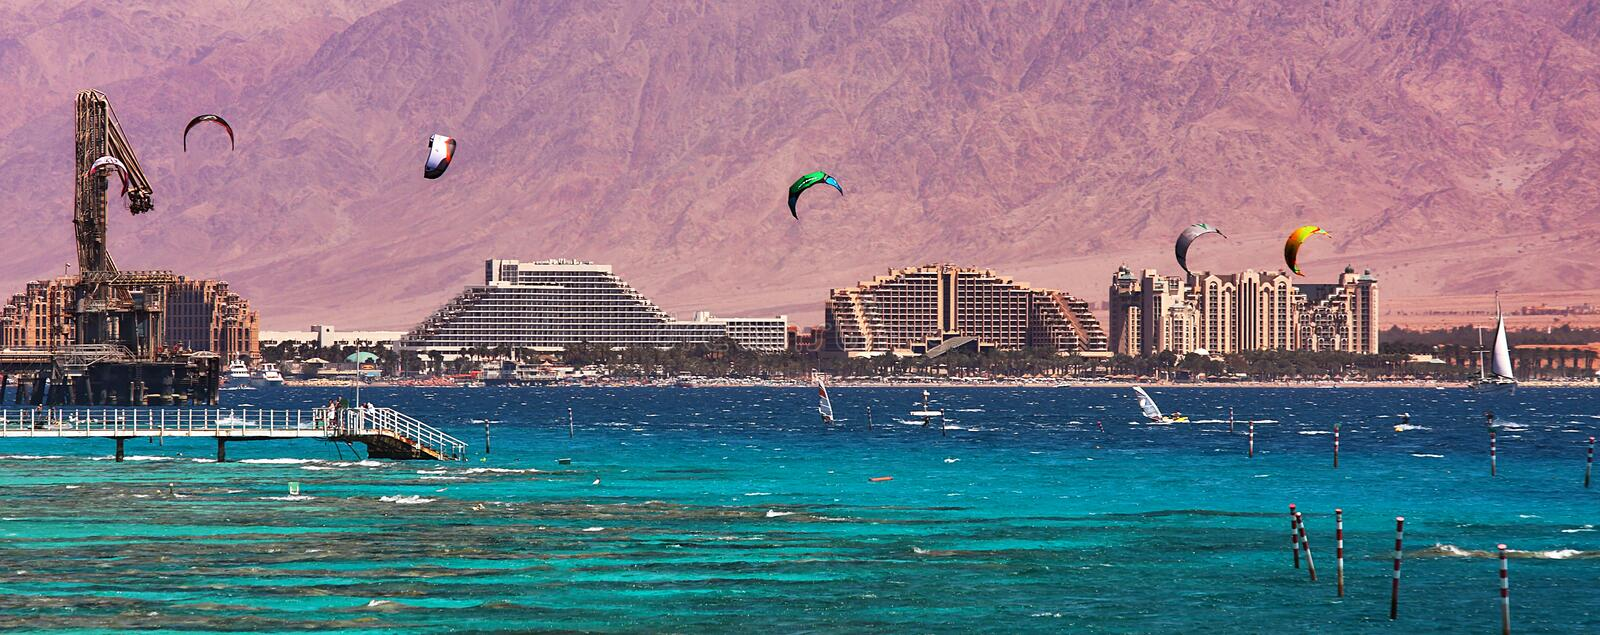 View on bay and coastline in Eilat, Israel. Panoramic view on coastline with hotels, mountains and bay of Eilat located on Red Sea in Israel royalty free stock photo